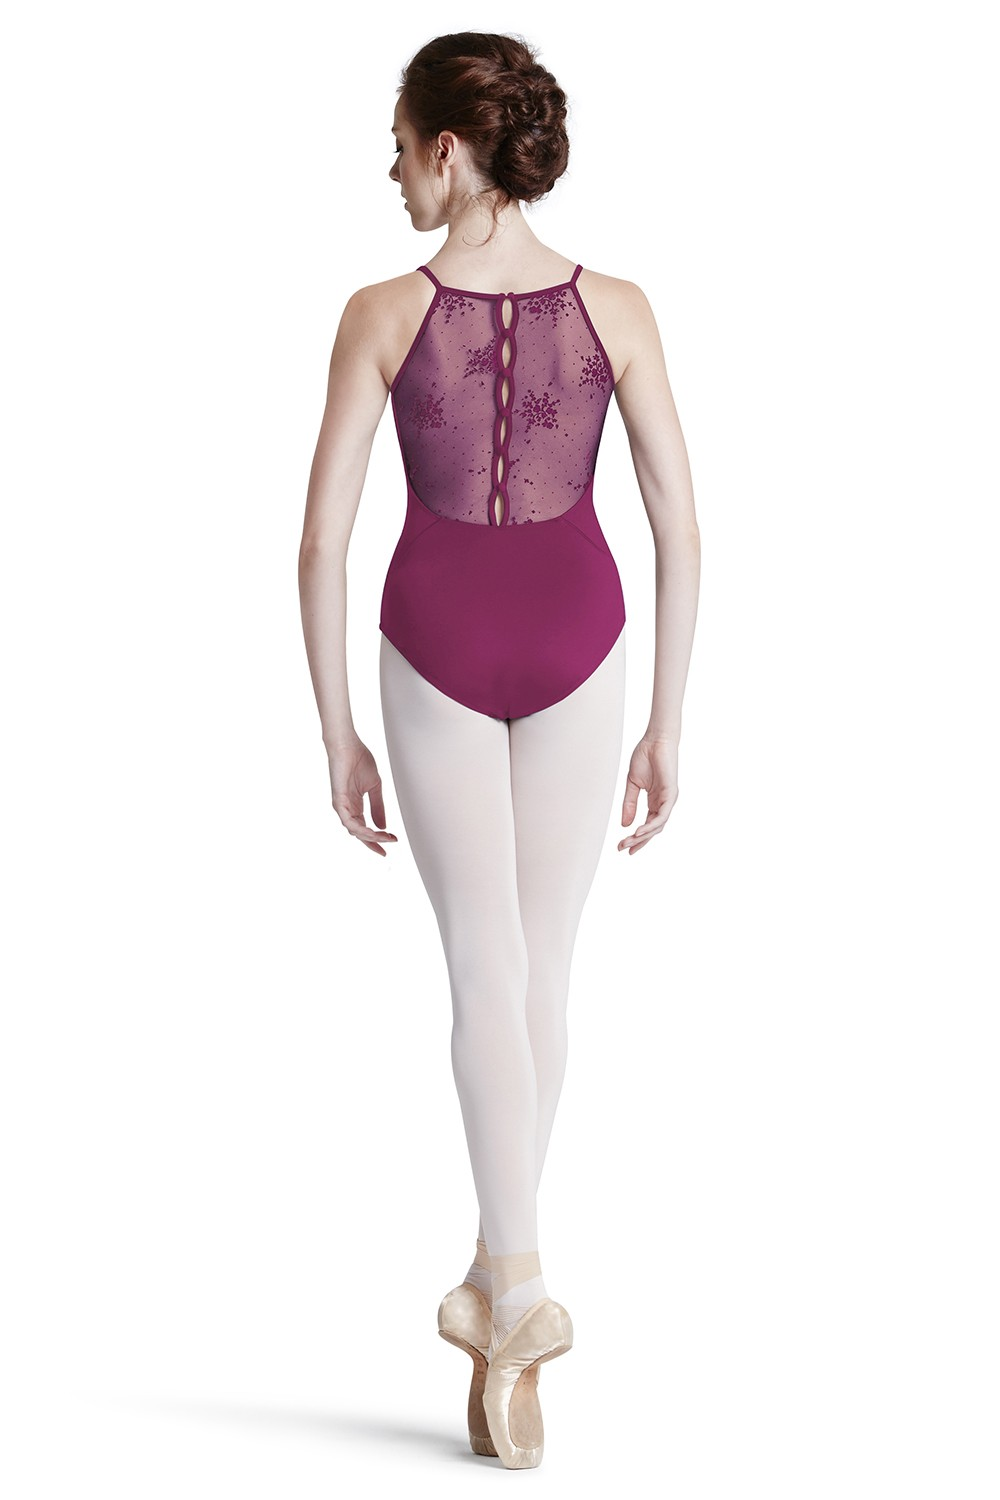 Floral Flock Mesh Back Camisole Leotard Women's Dance Leotards